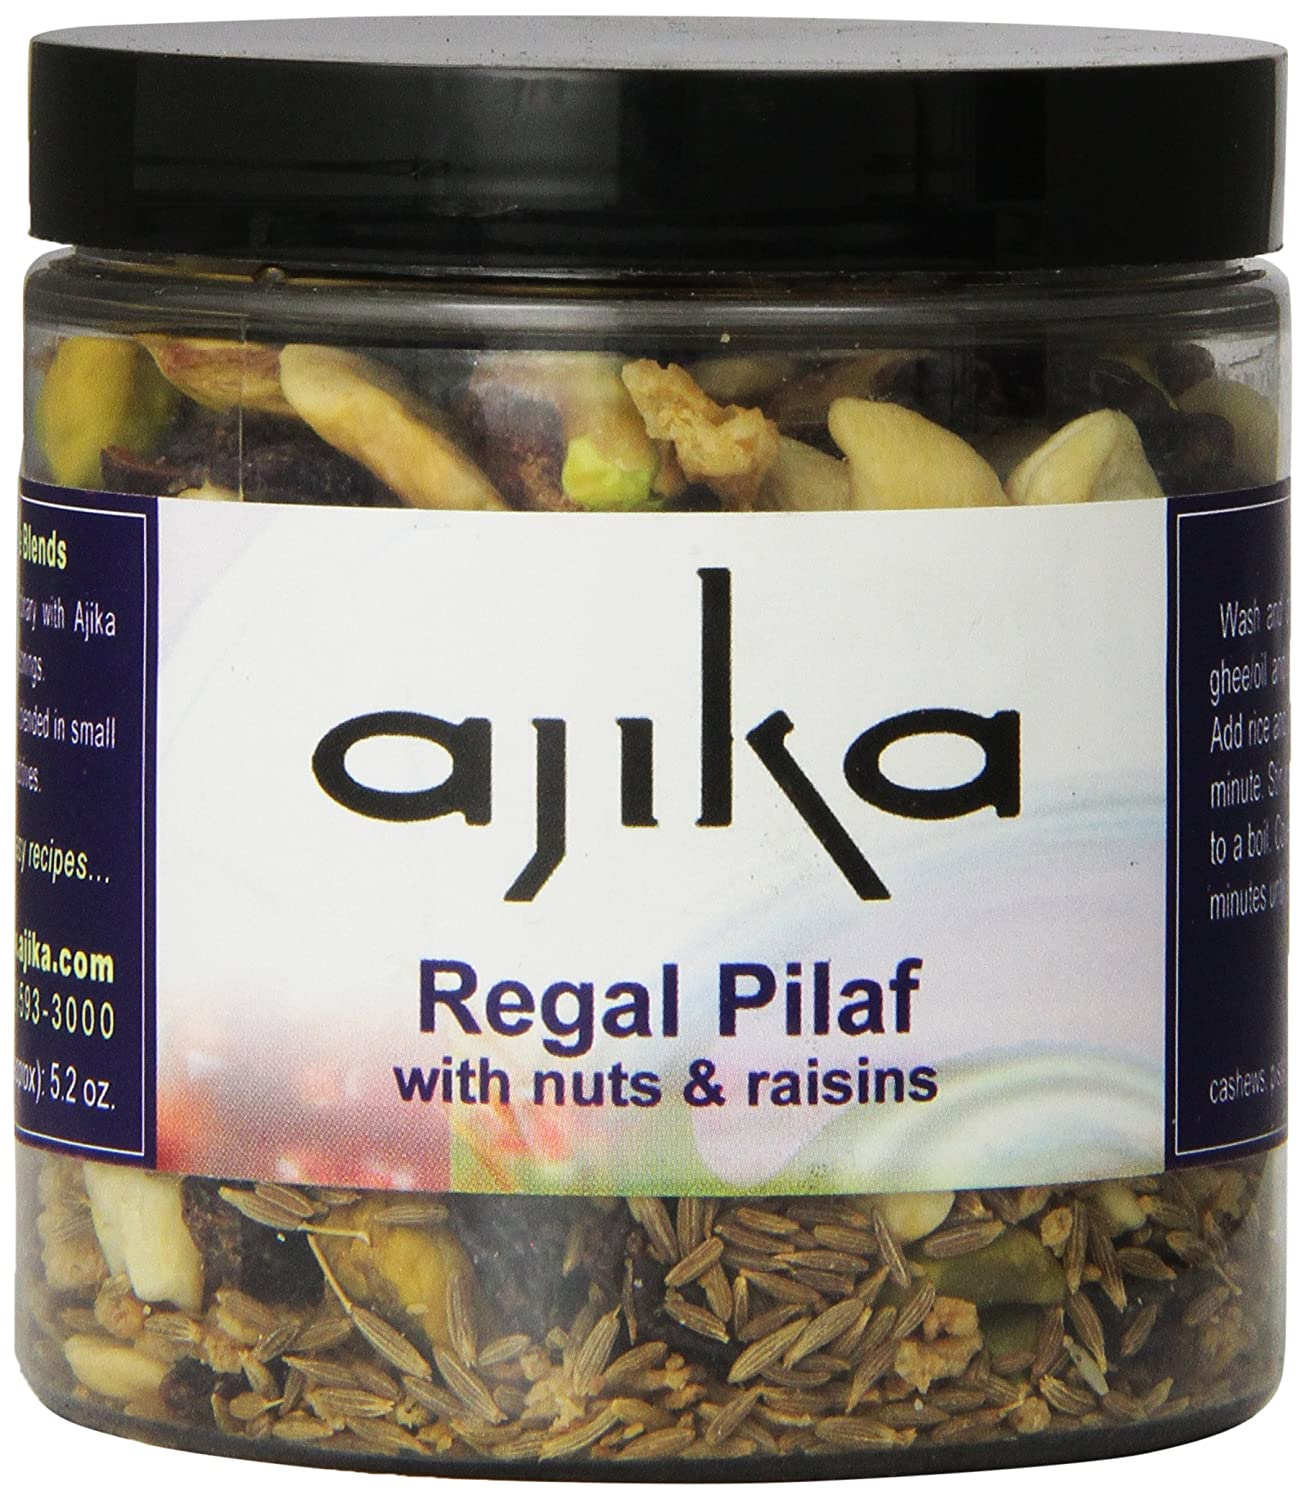 Ajika Regal Pilaf with Nuts and Rasins -Whole Spice Aromatic Blend for Basmati Rice, 5-Ounce